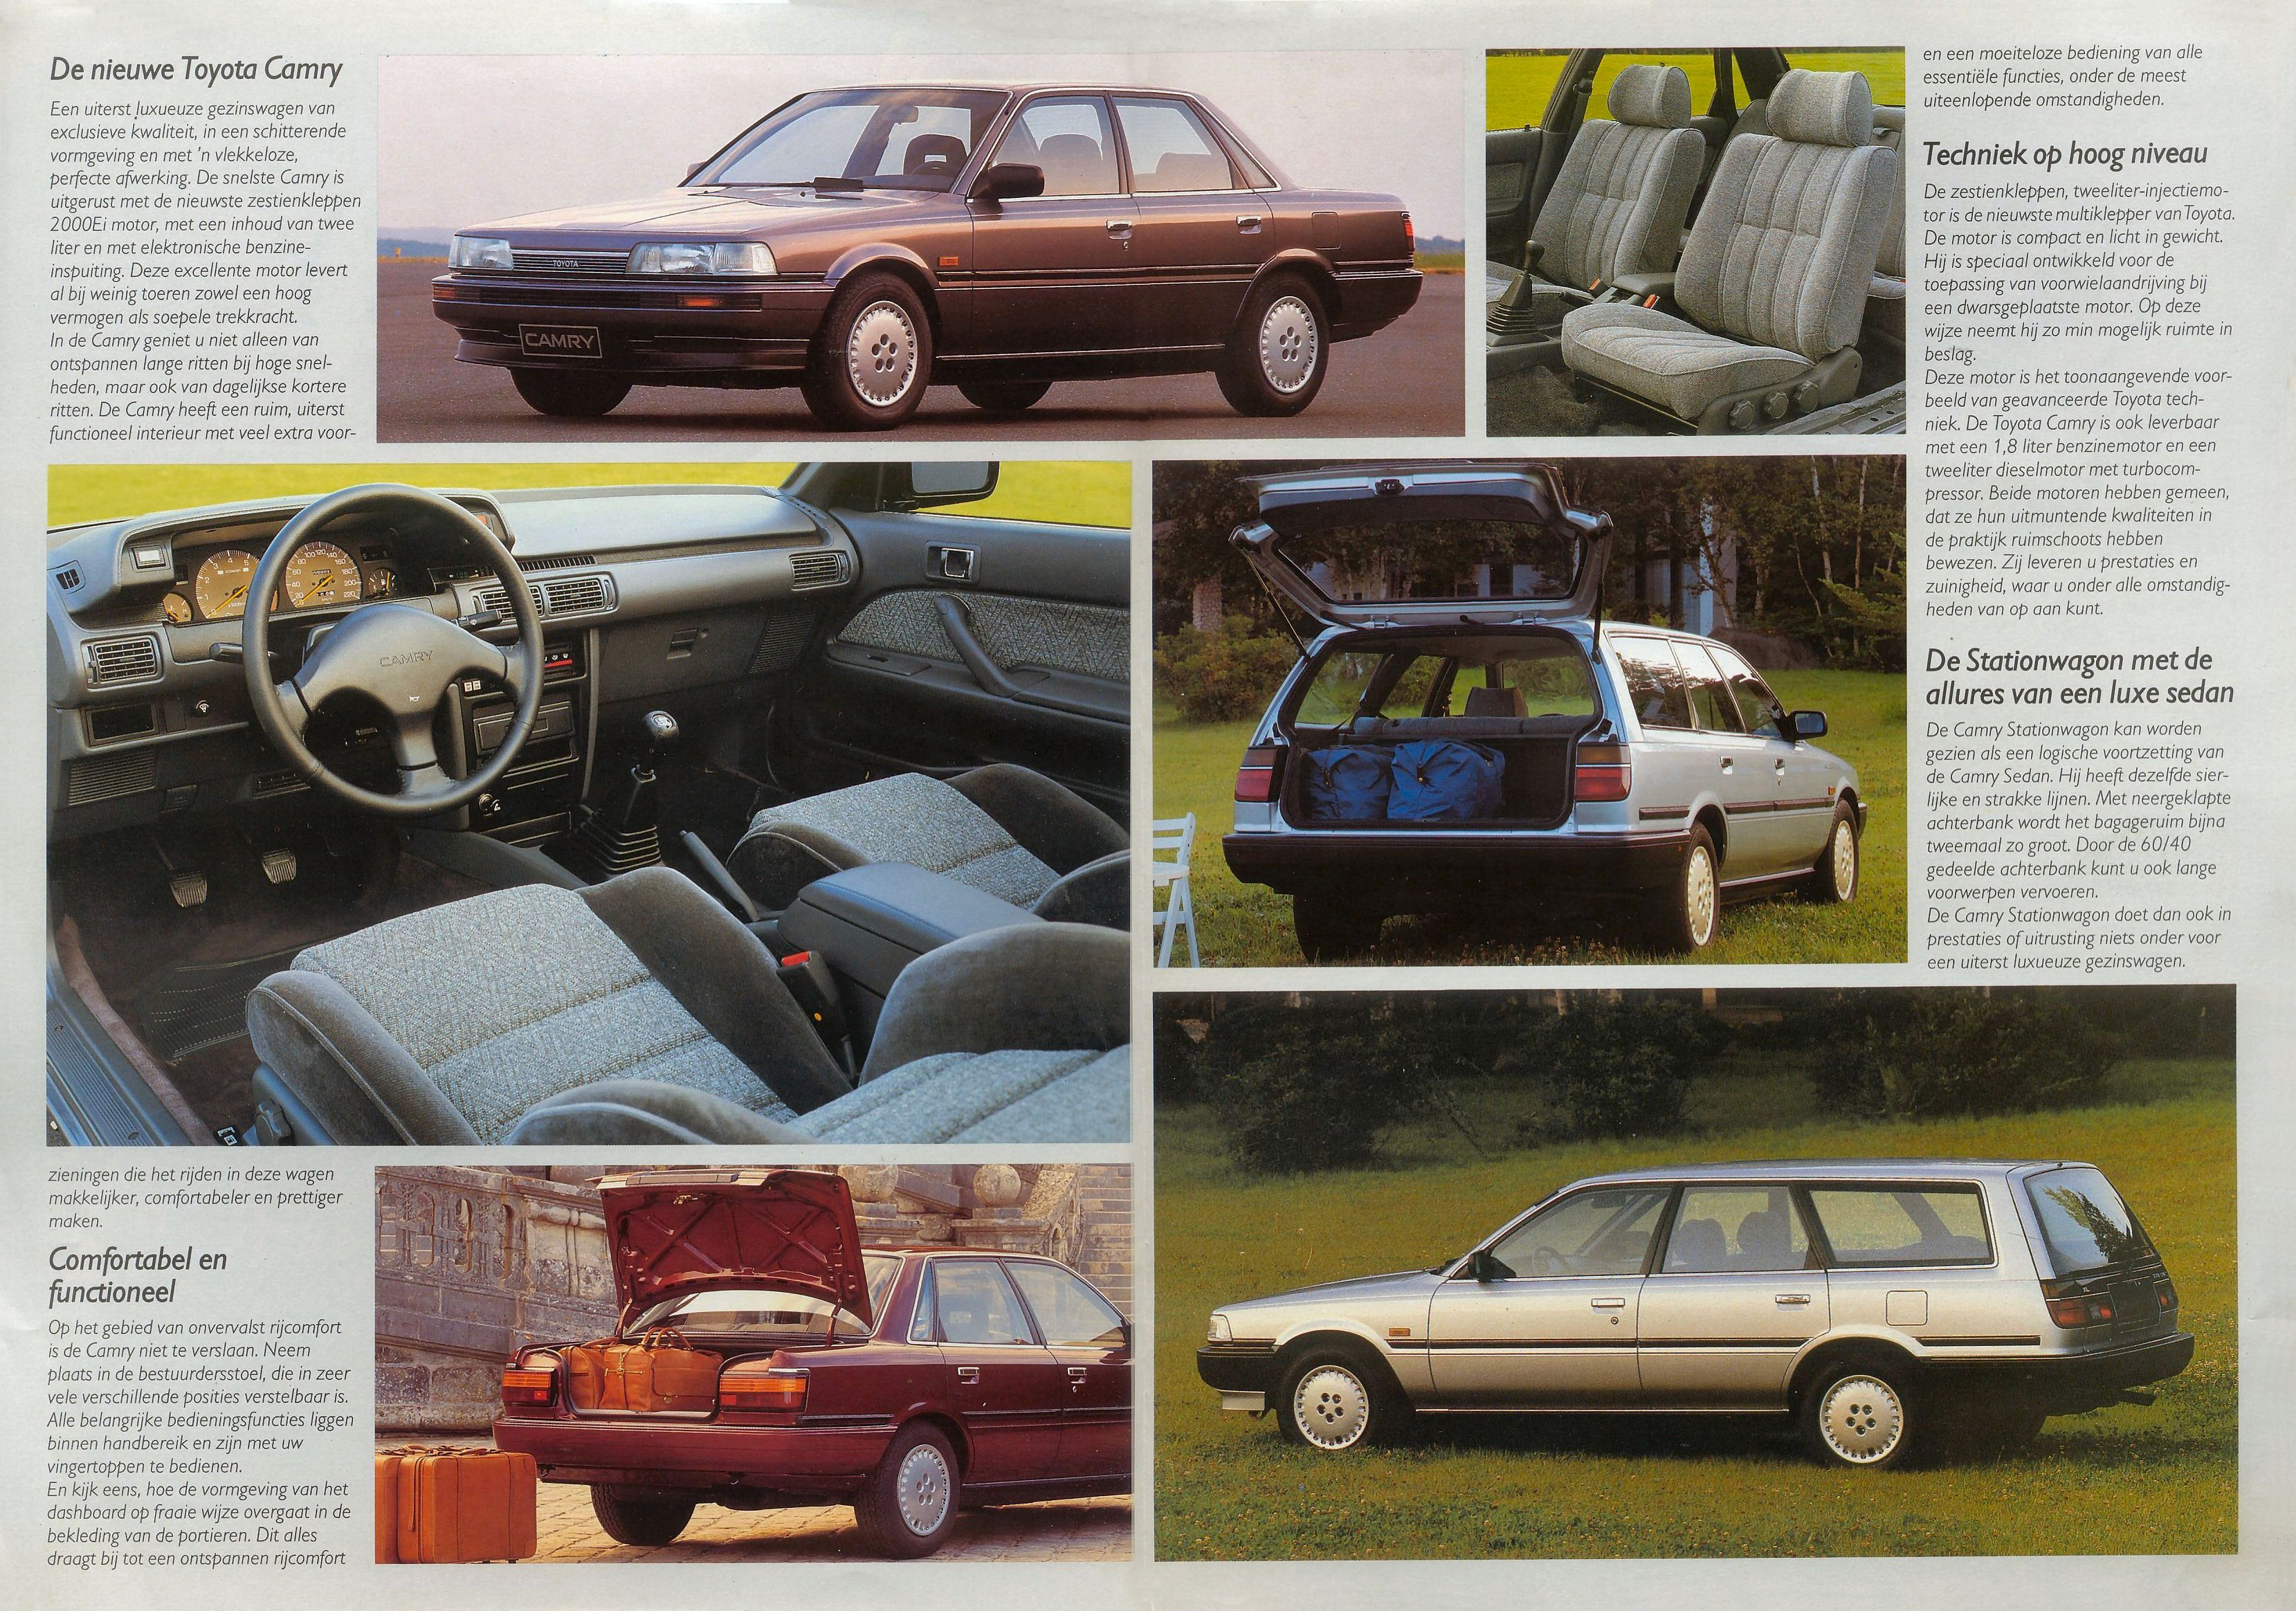 1987 Toyota Camry Brochure